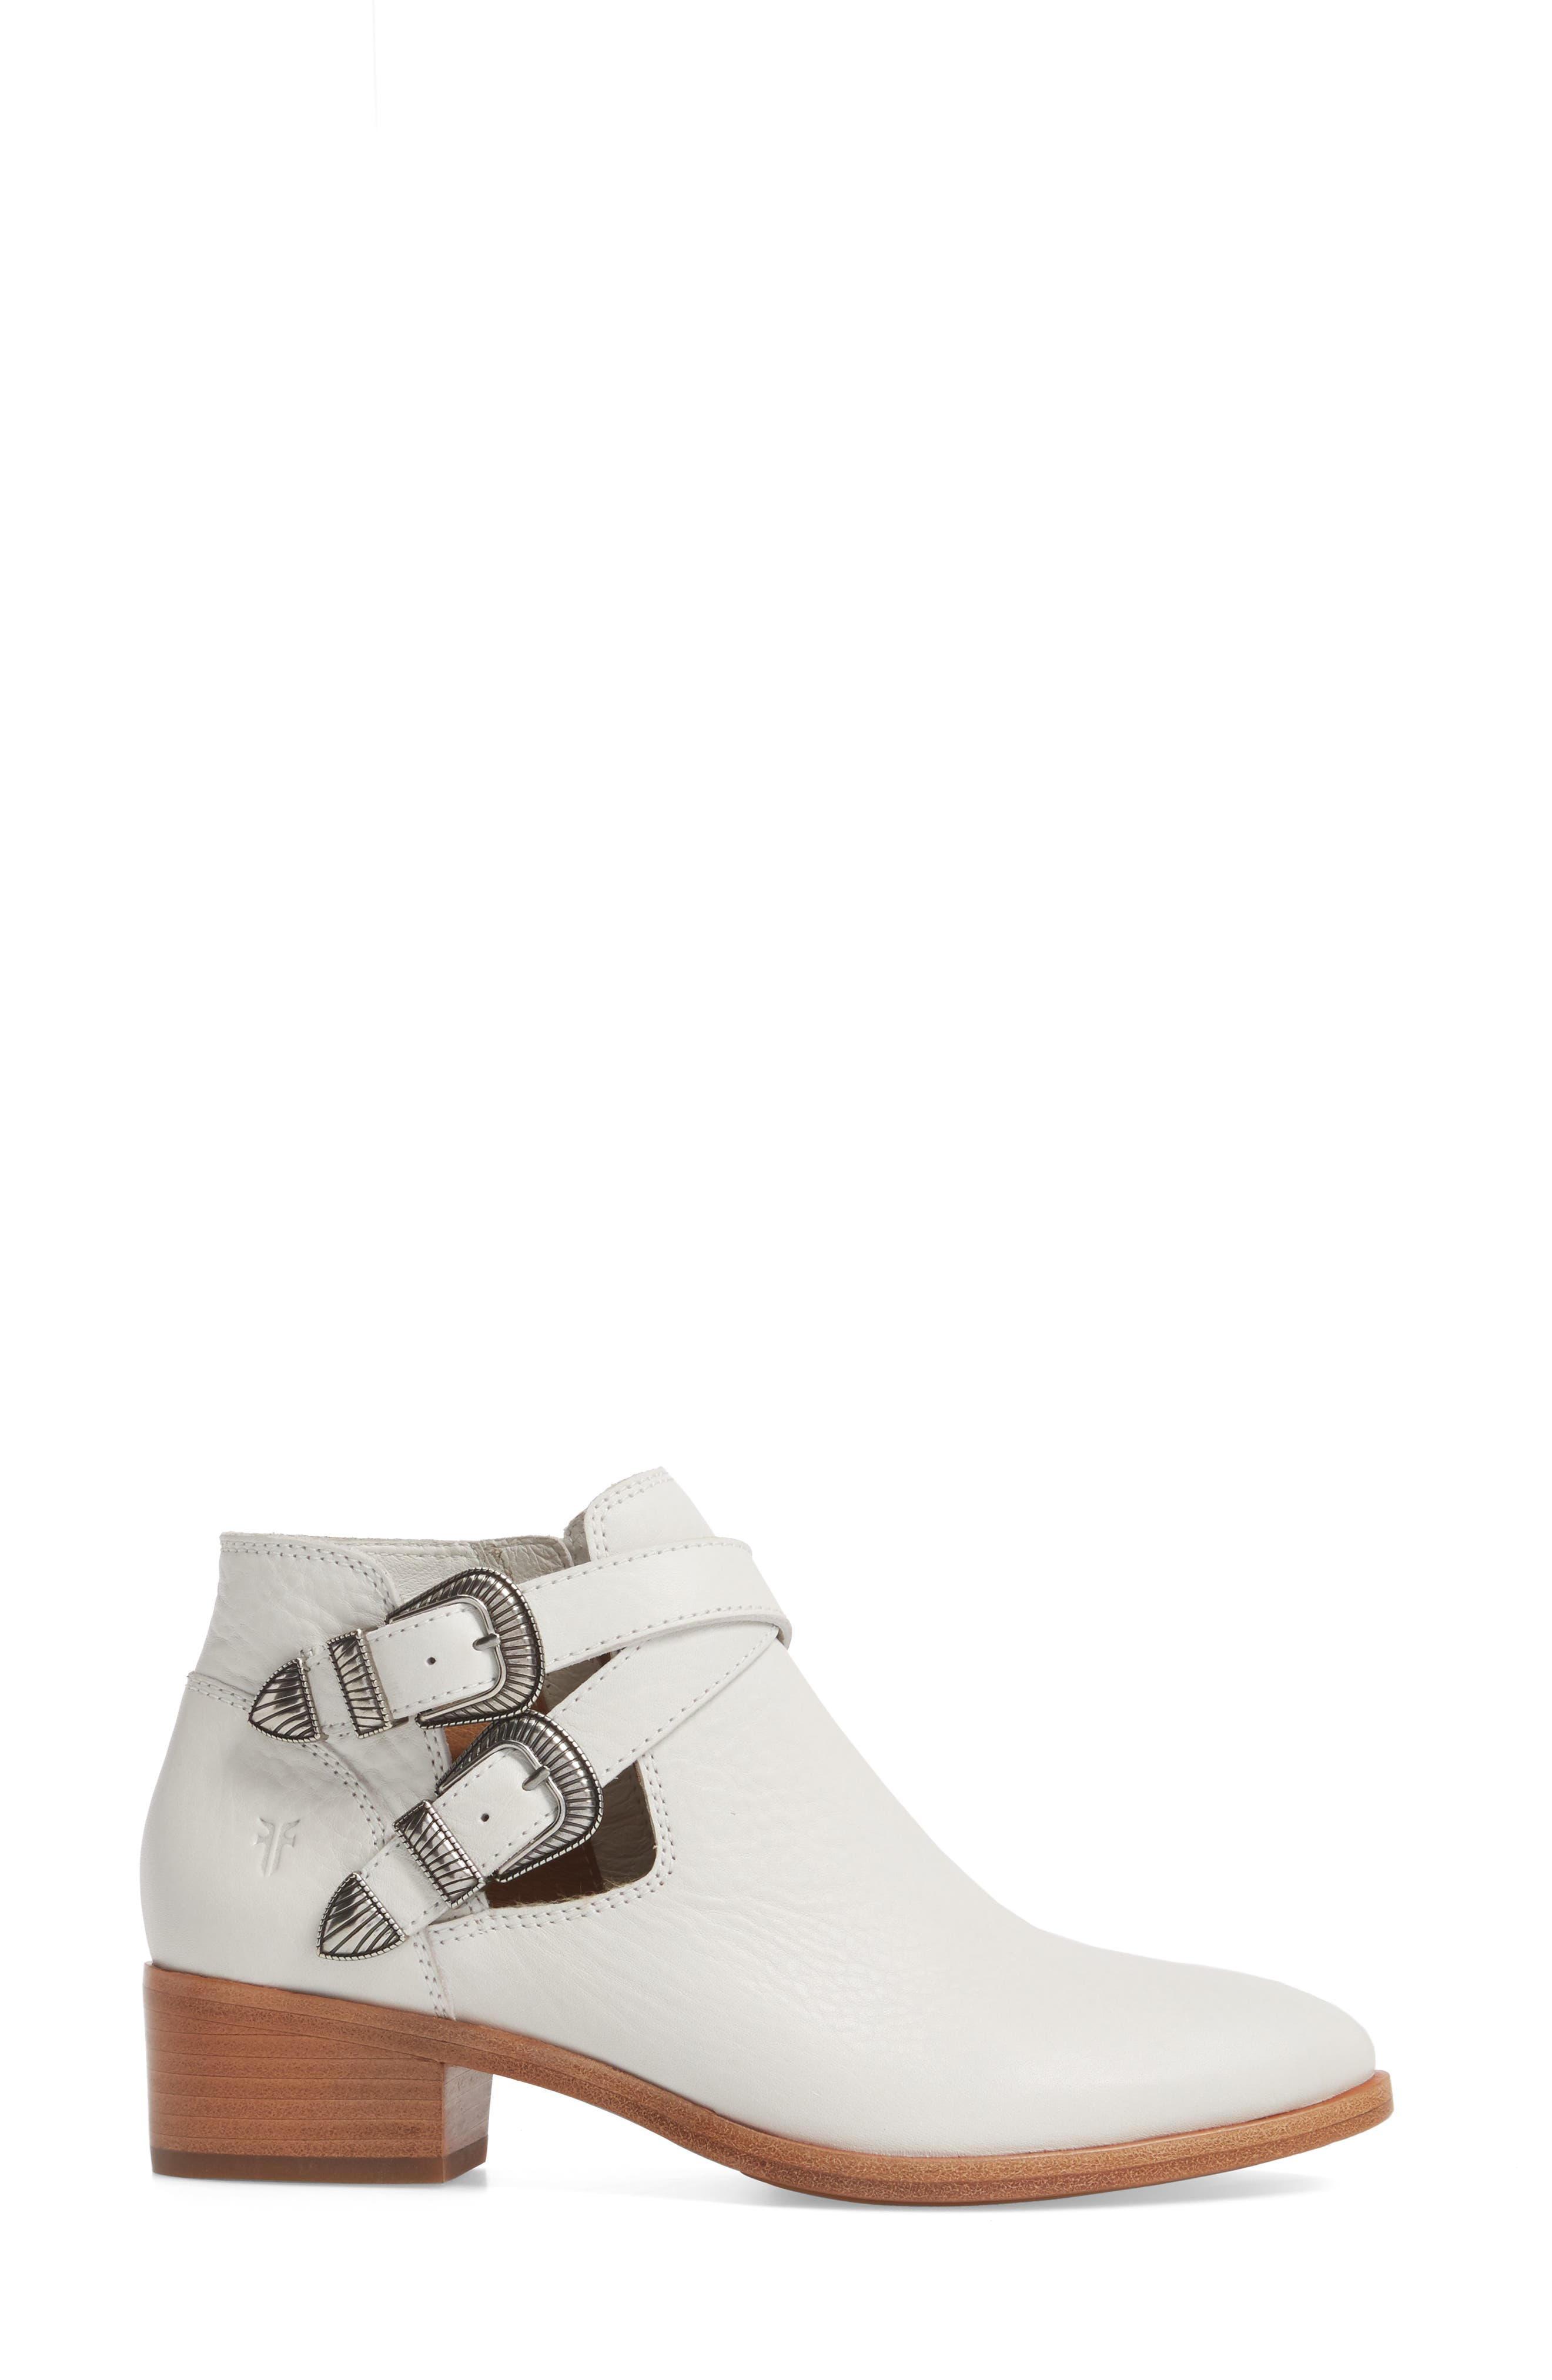 Ray Western Bootie,                             Alternate thumbnail 3, color,                             White/ White Leather